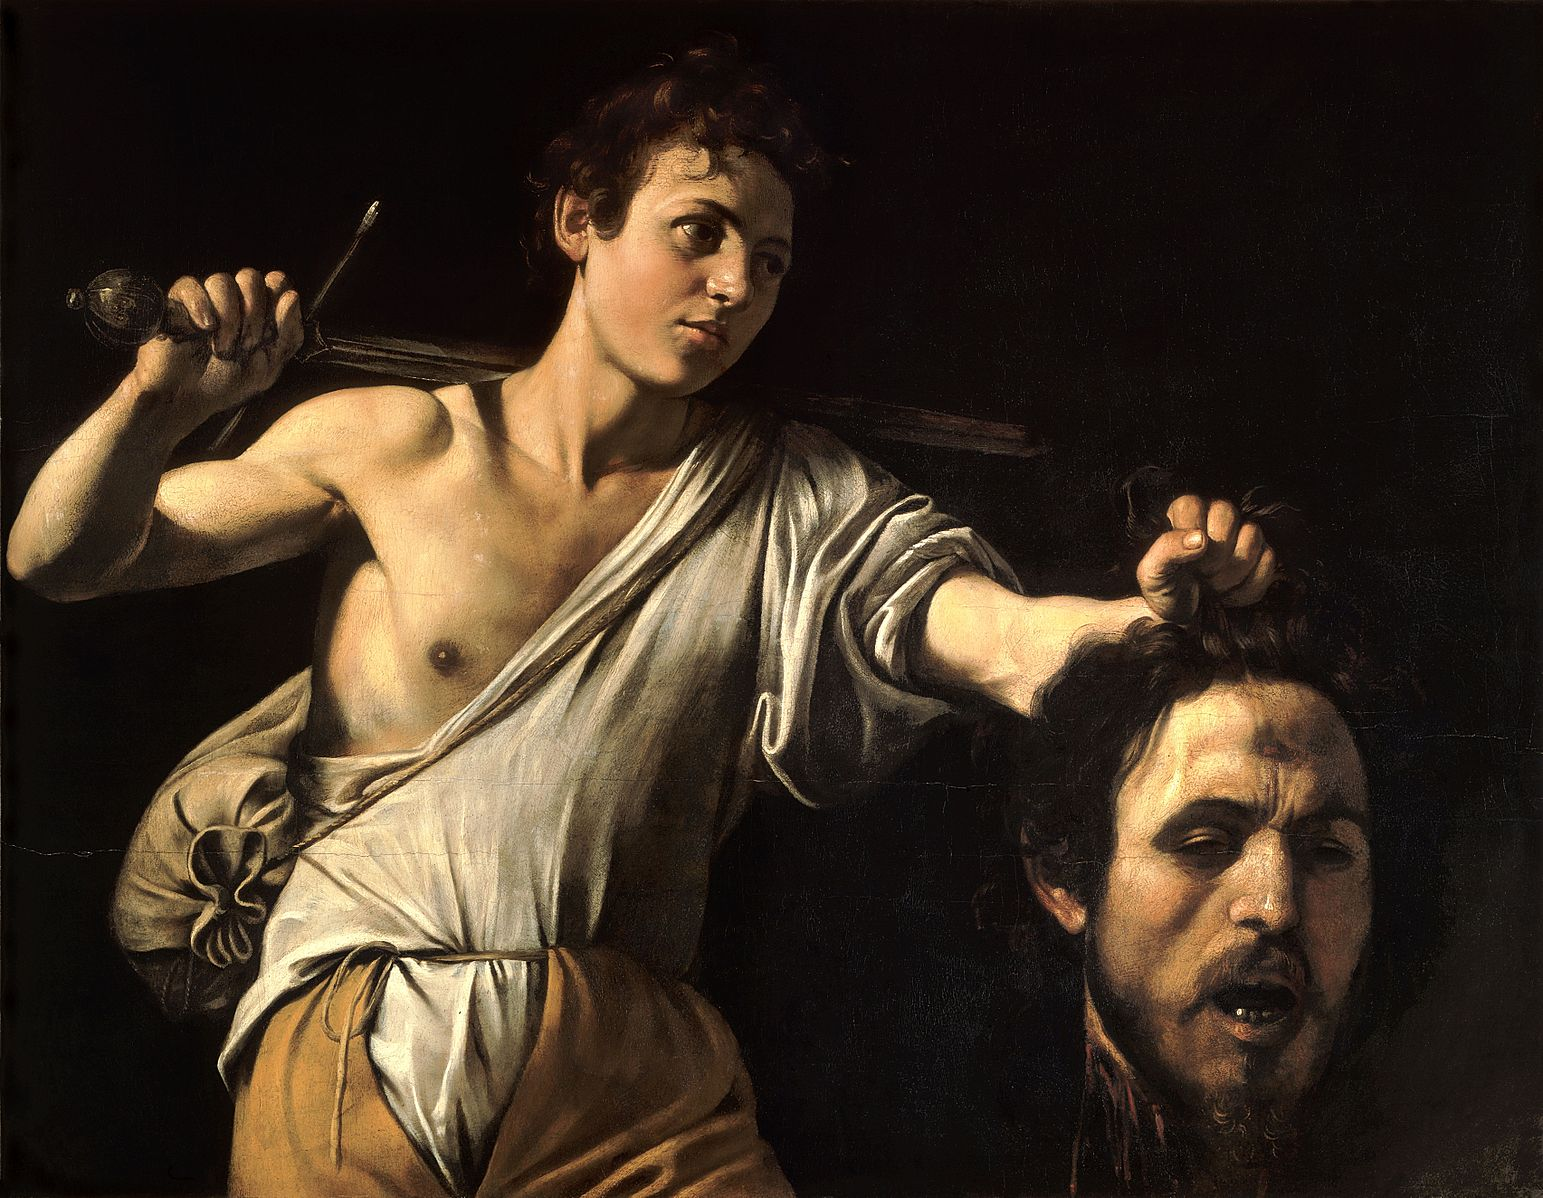 david with the head of goliath essay Guido reni's david in the david with the head of goliath, 1605-06, in the louvre wears what is probably meant to be the skin of a lion or bear, no doubt a reference to david's words in 1 samuel: 17, 34, where he describes how he defended his father's flock against wild animals 13 ibid, cat no 51, repr p 175.